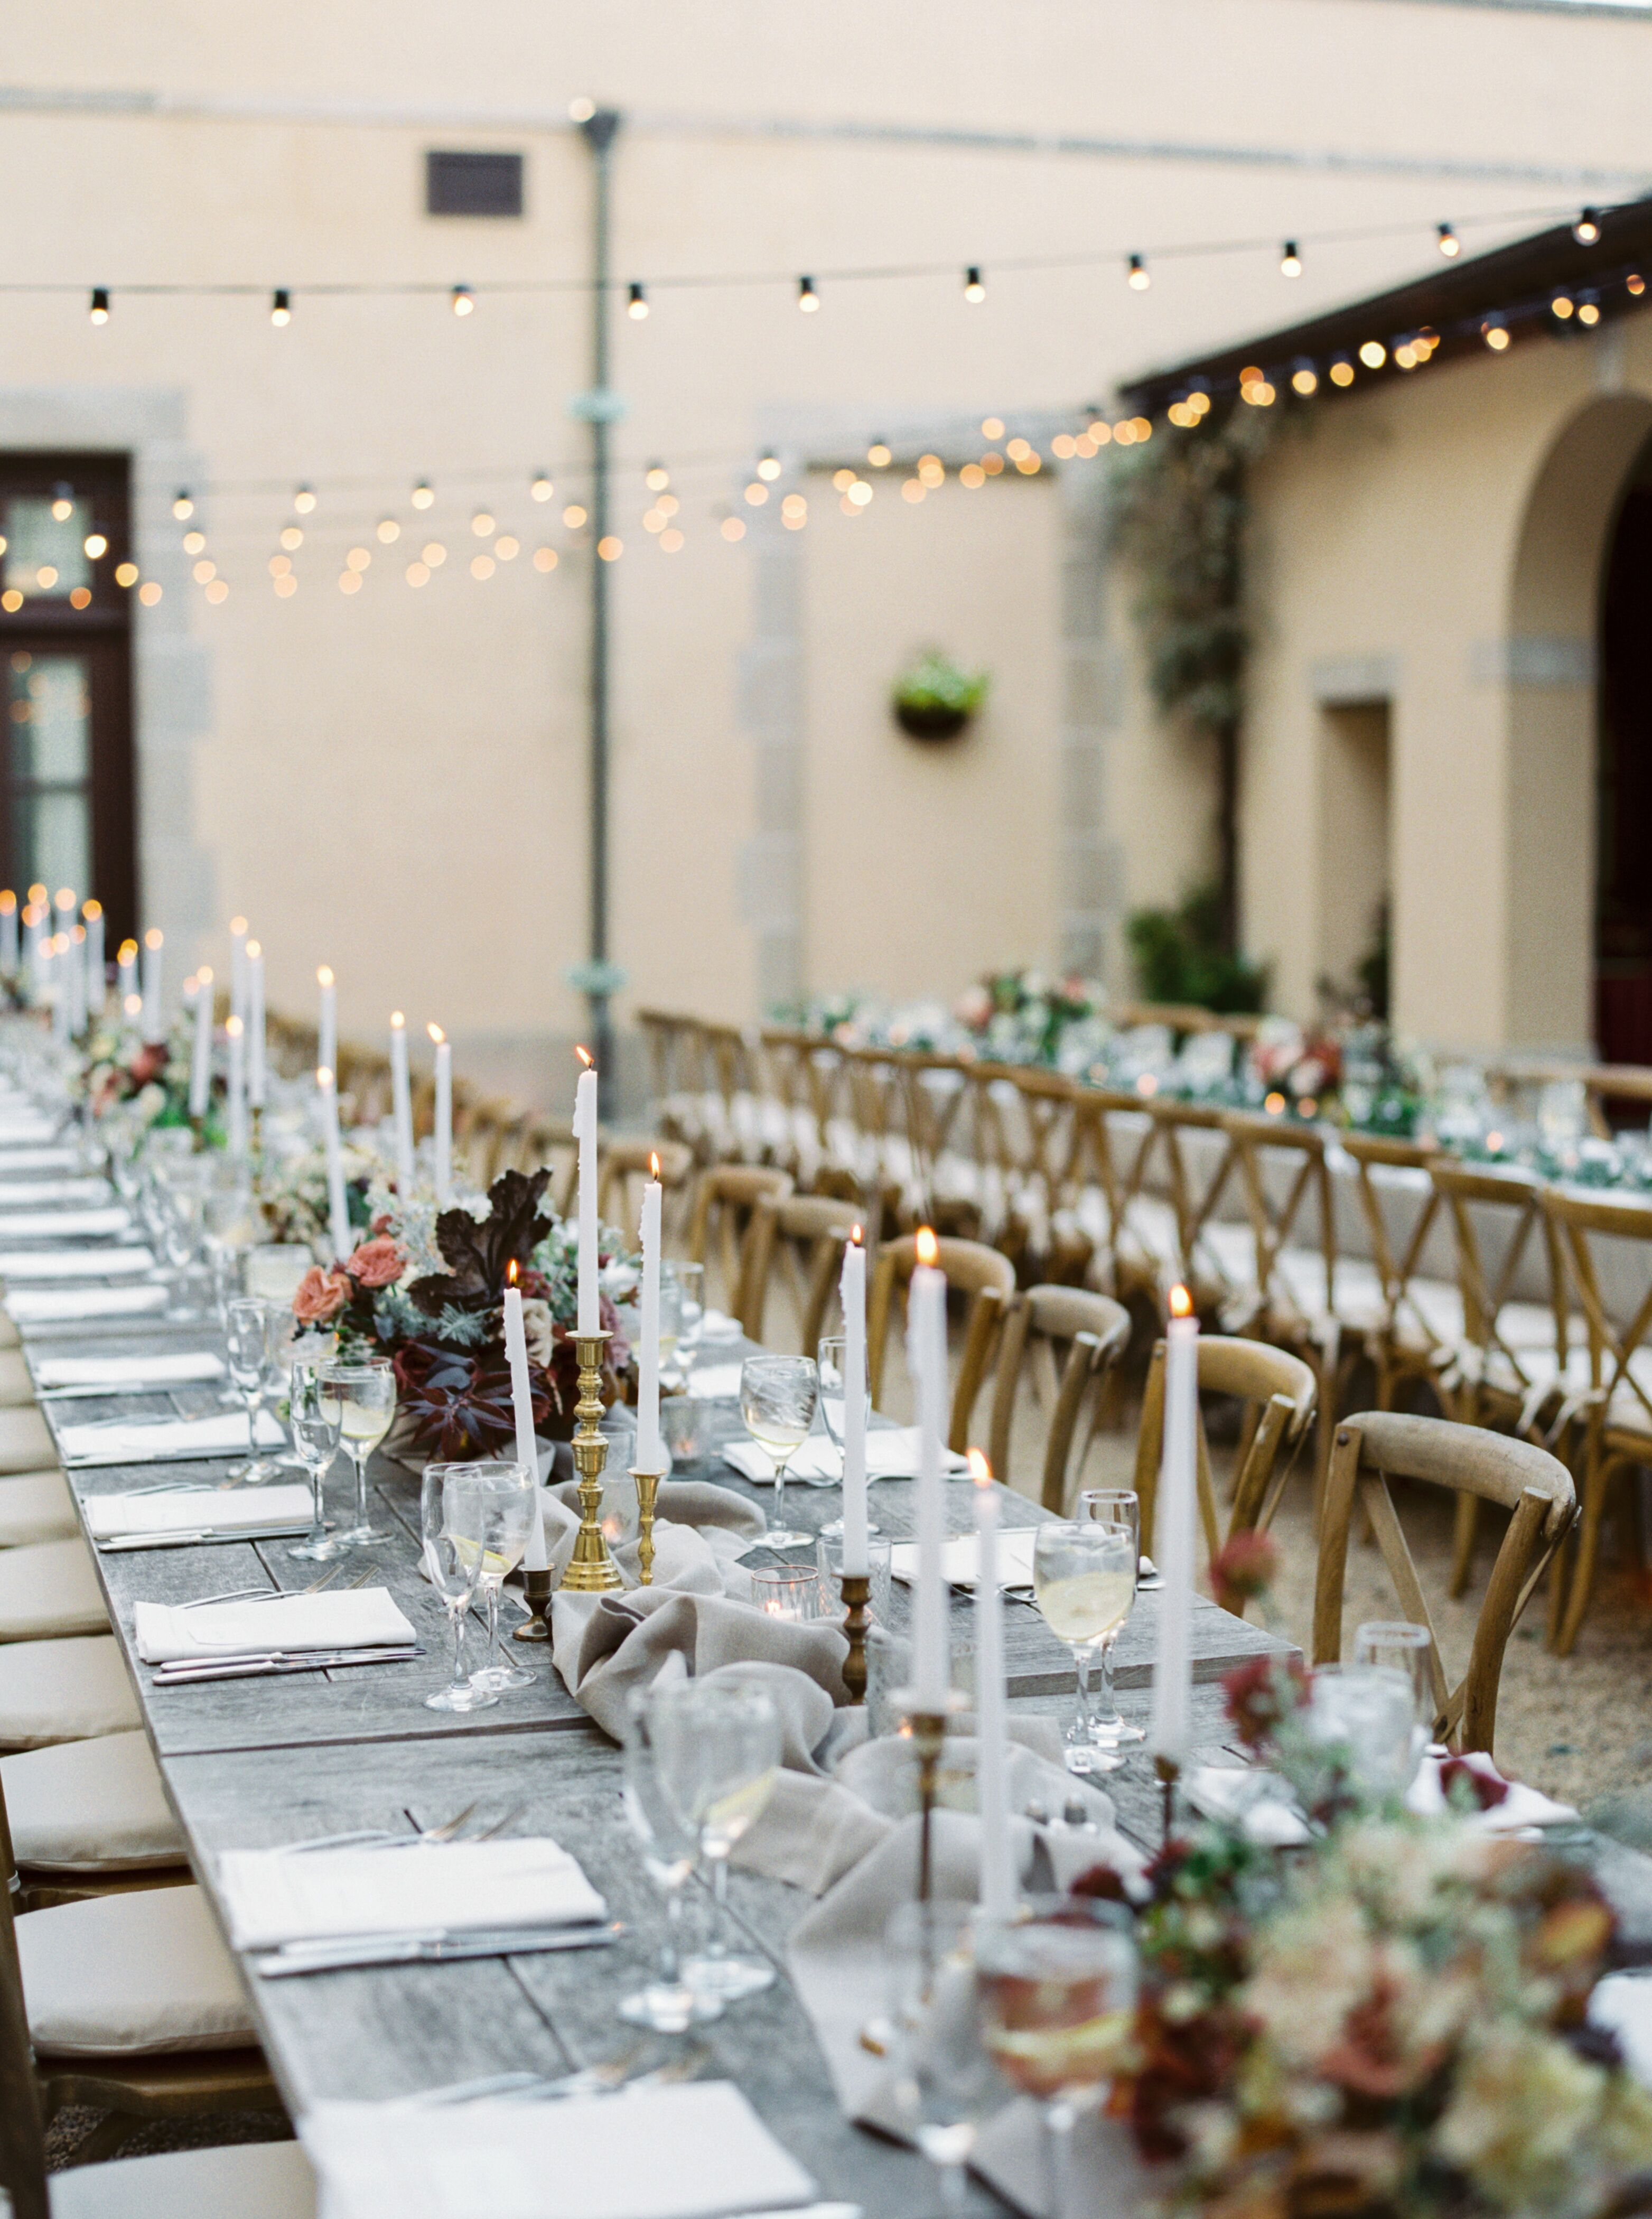 Stunning Candlelit Tablescape At Outdoor Hamptons Wedding At Oheka Castle In Huntington New York Brought T Oheka Castle Hamptons Wedding Candlelit Tablescape